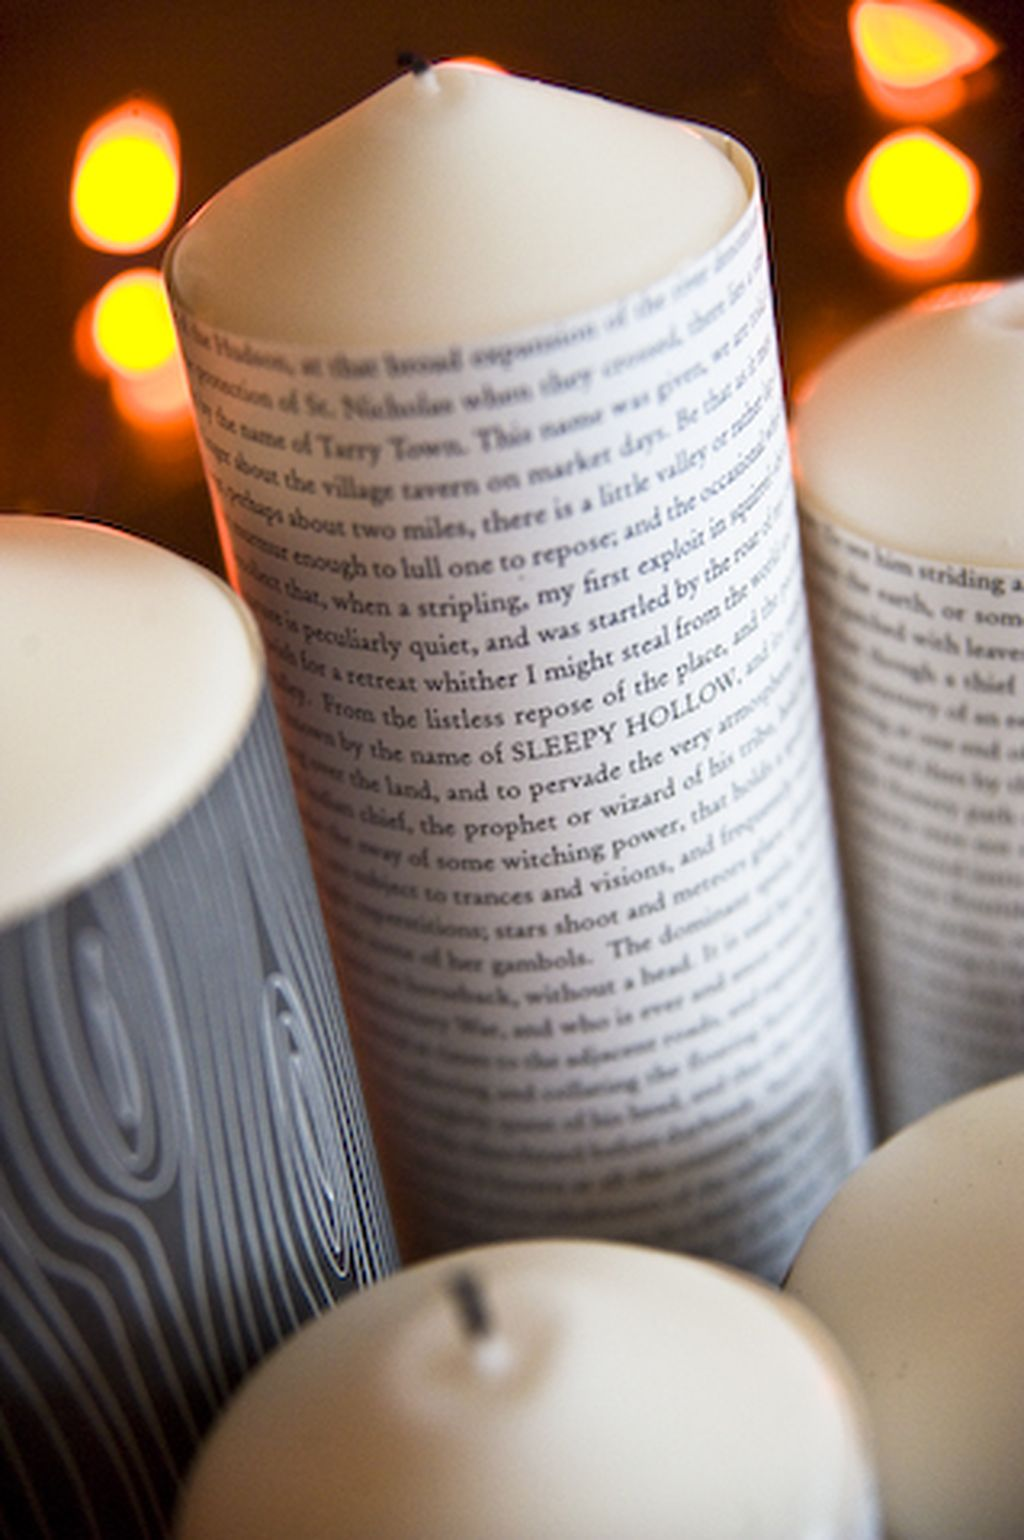 Inspiring Modern Rustic Christmas Centerpieces Ideas With Candles 47